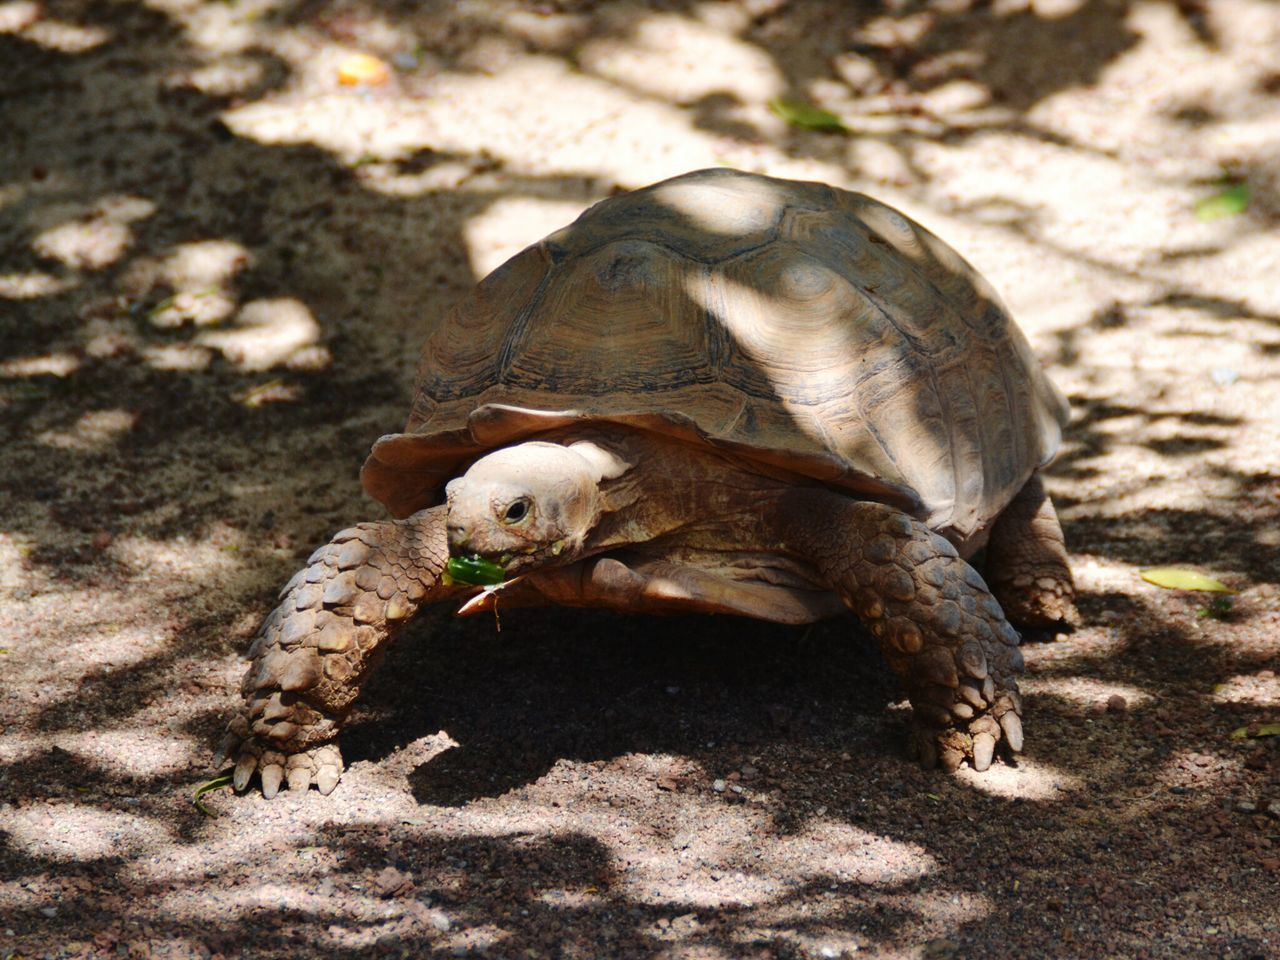 animal themes, one animal, shadow, sunlight, animals in the wild, no people, day, sand, animal wildlife, outdoors, nature, tortoise, close-up, tortoise shell, mammal